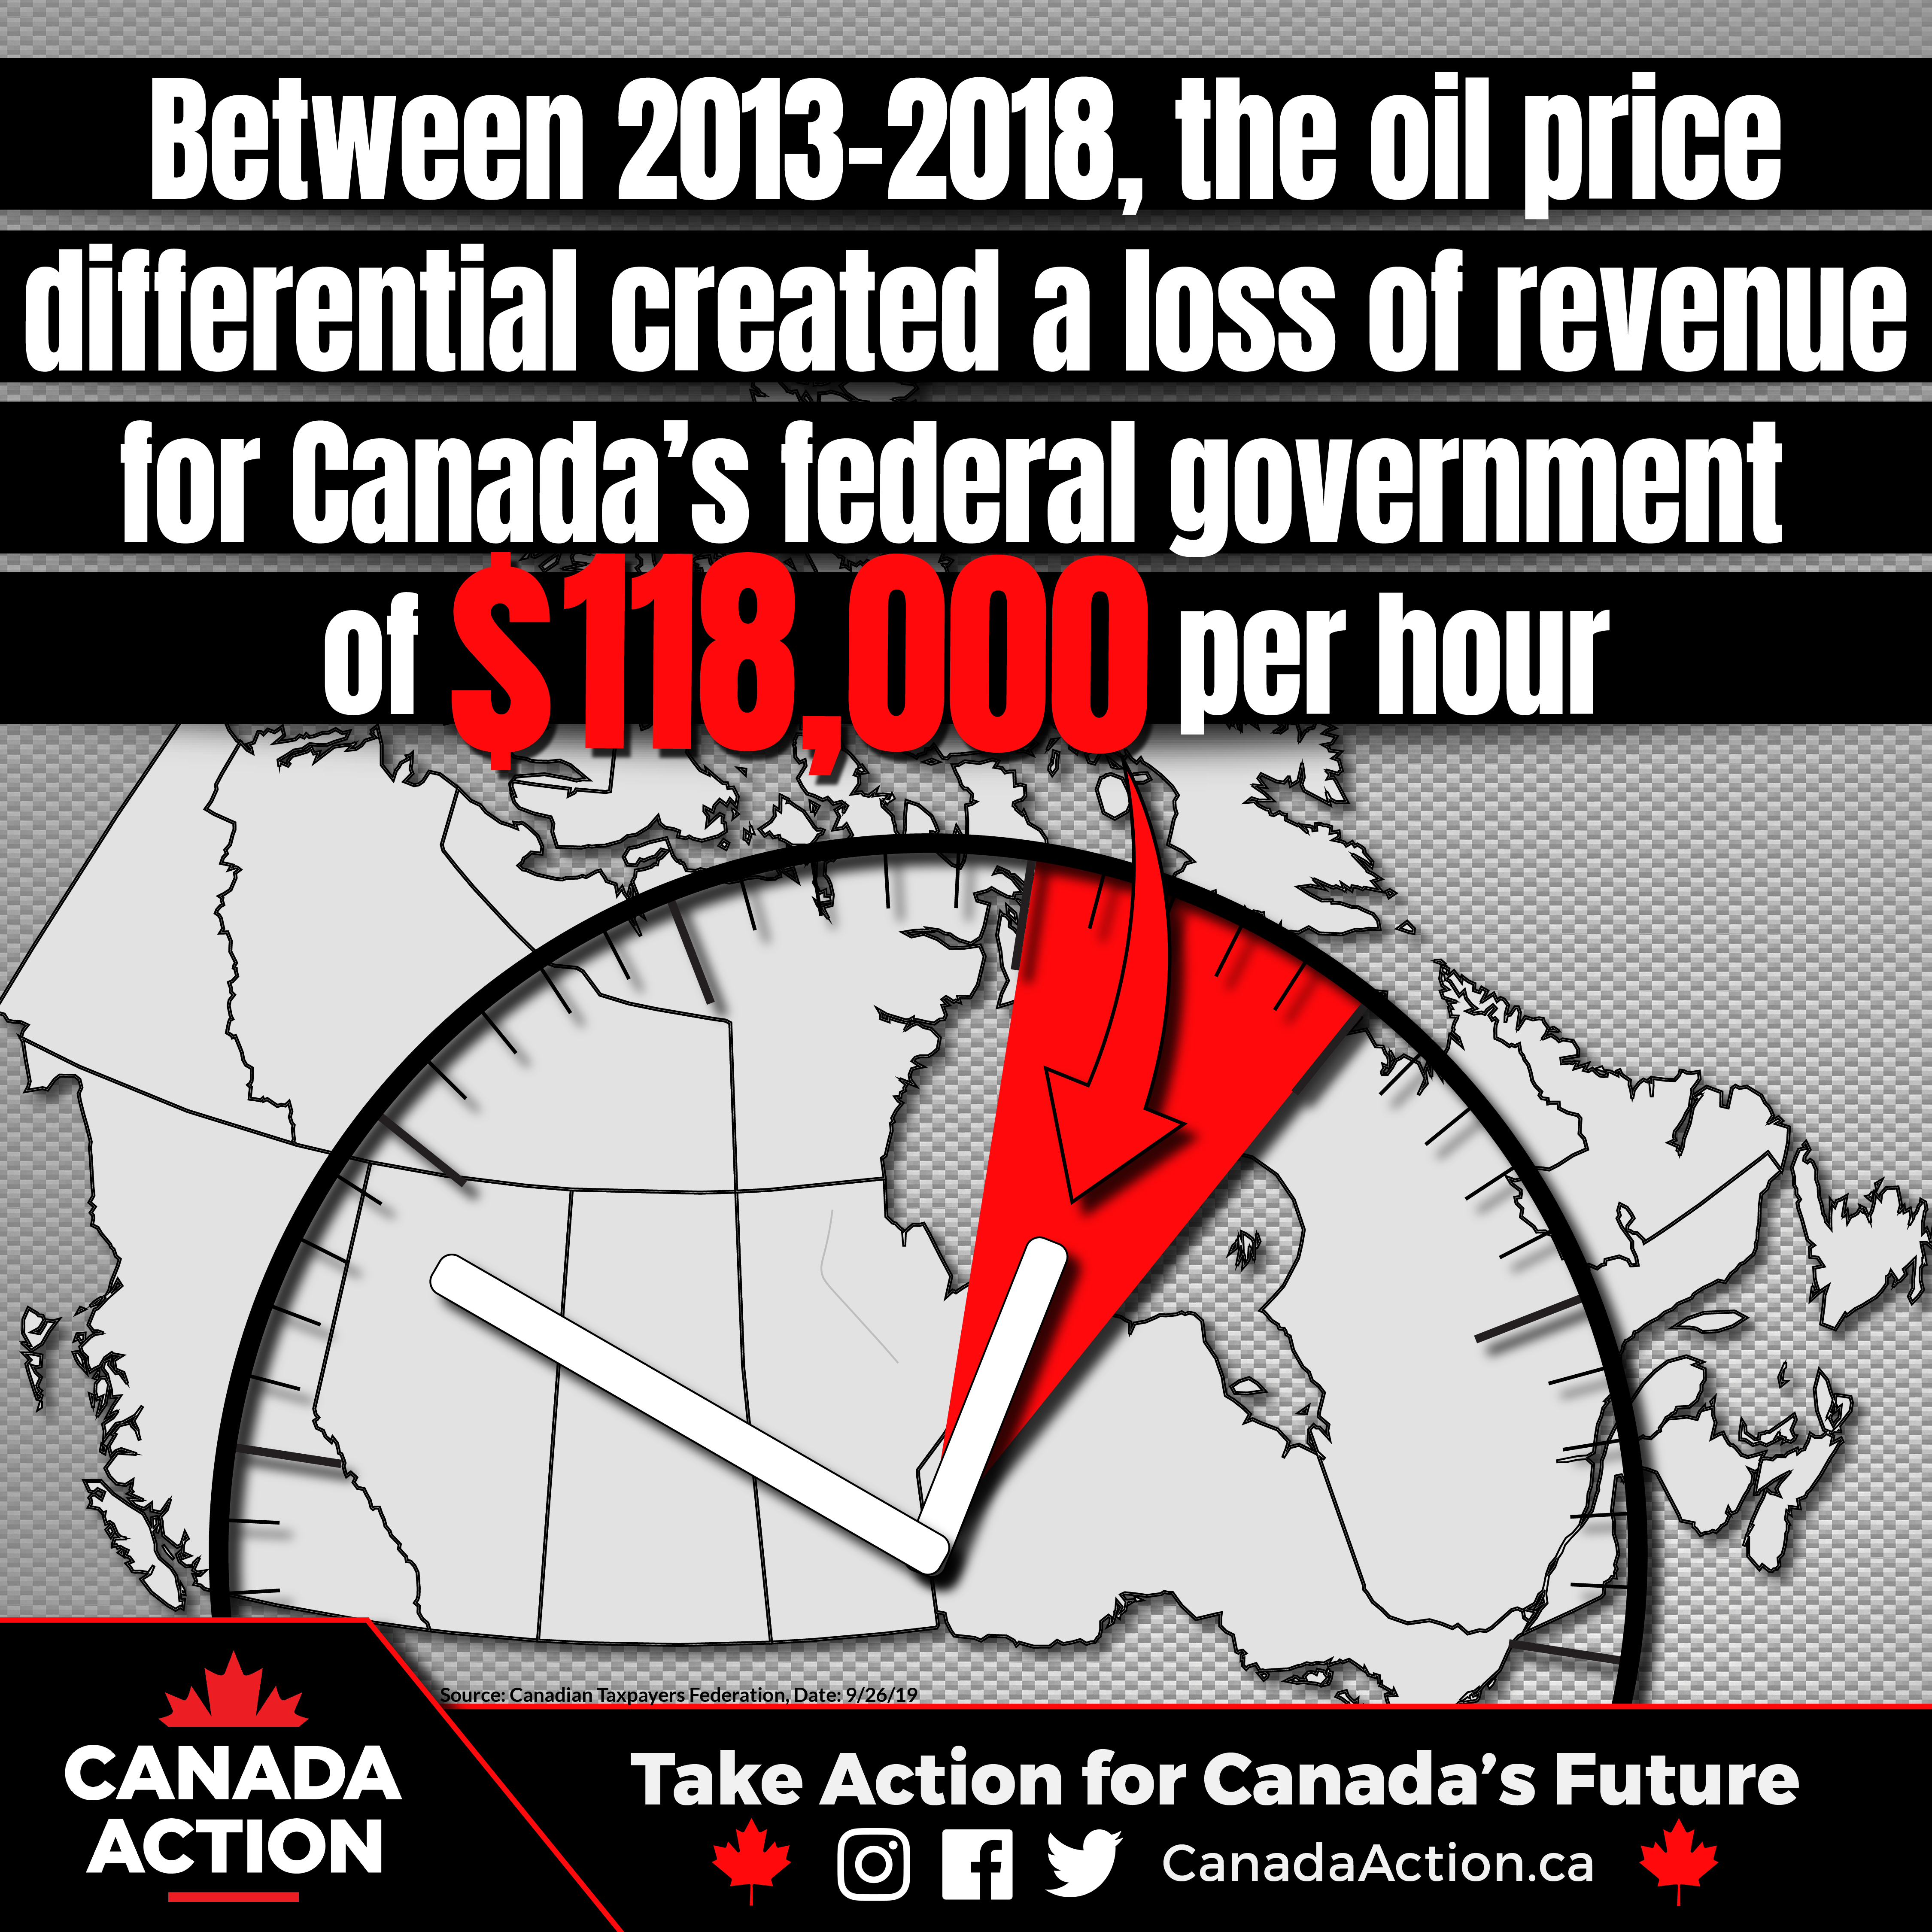 canadian oil price discount foregone federal government revenues 2013-2018